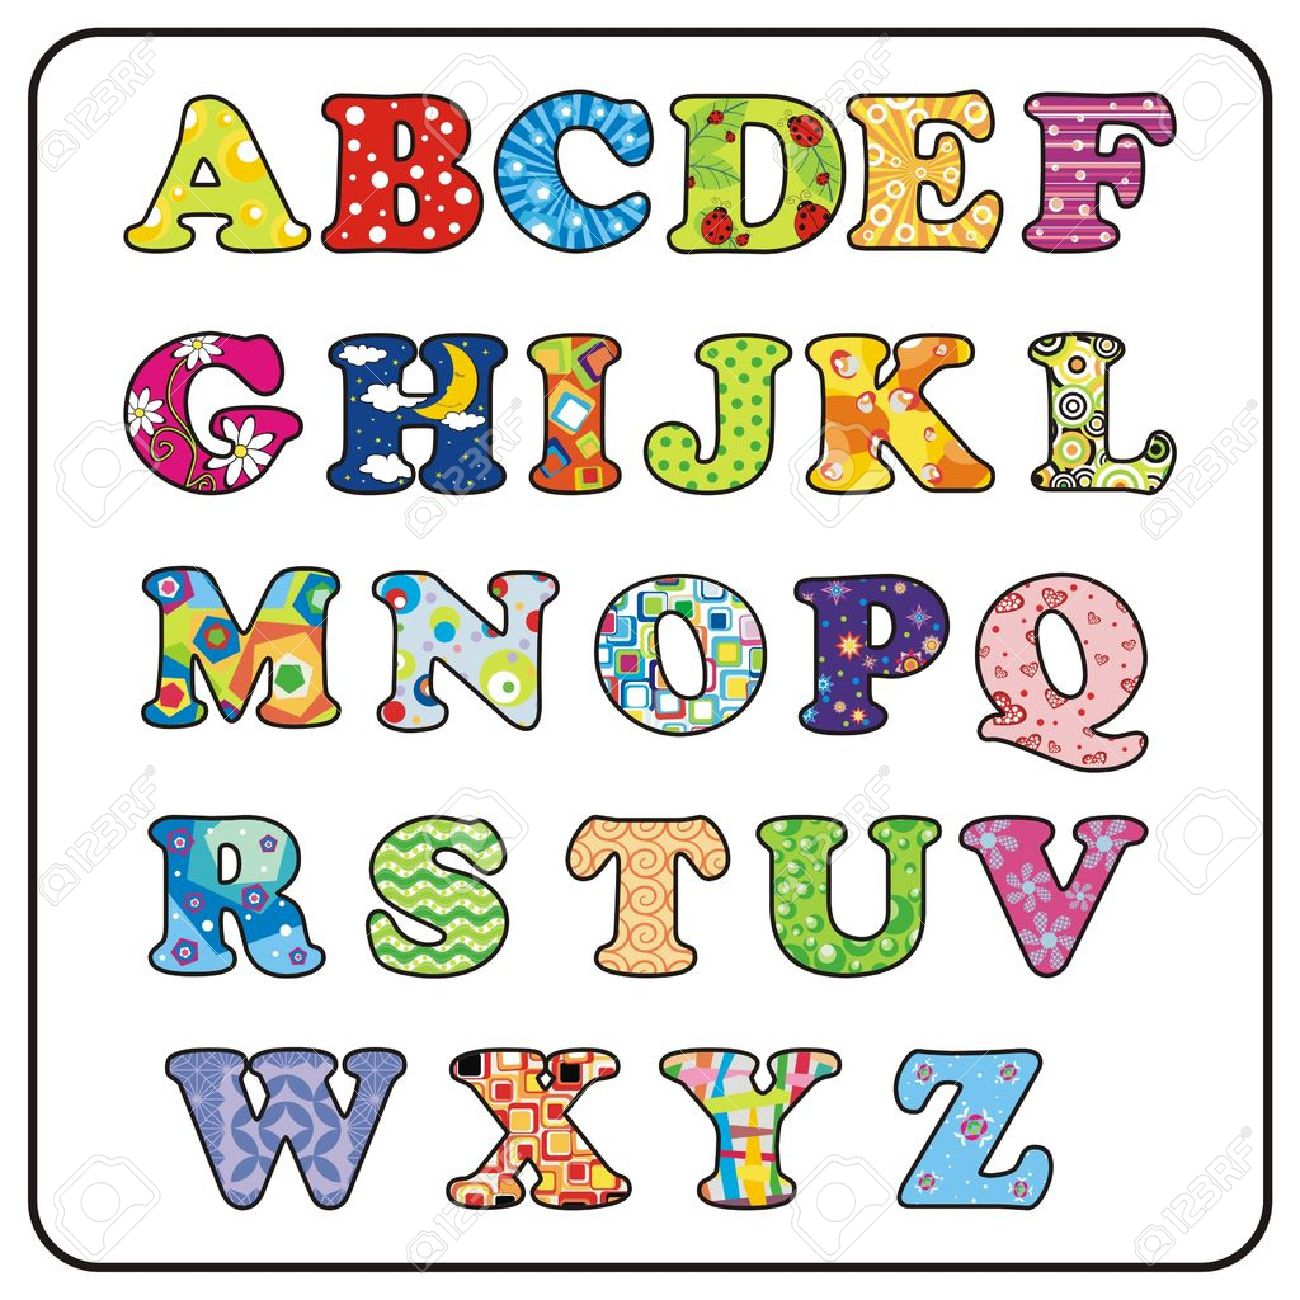 abc cartoon colorful alphabet illustration